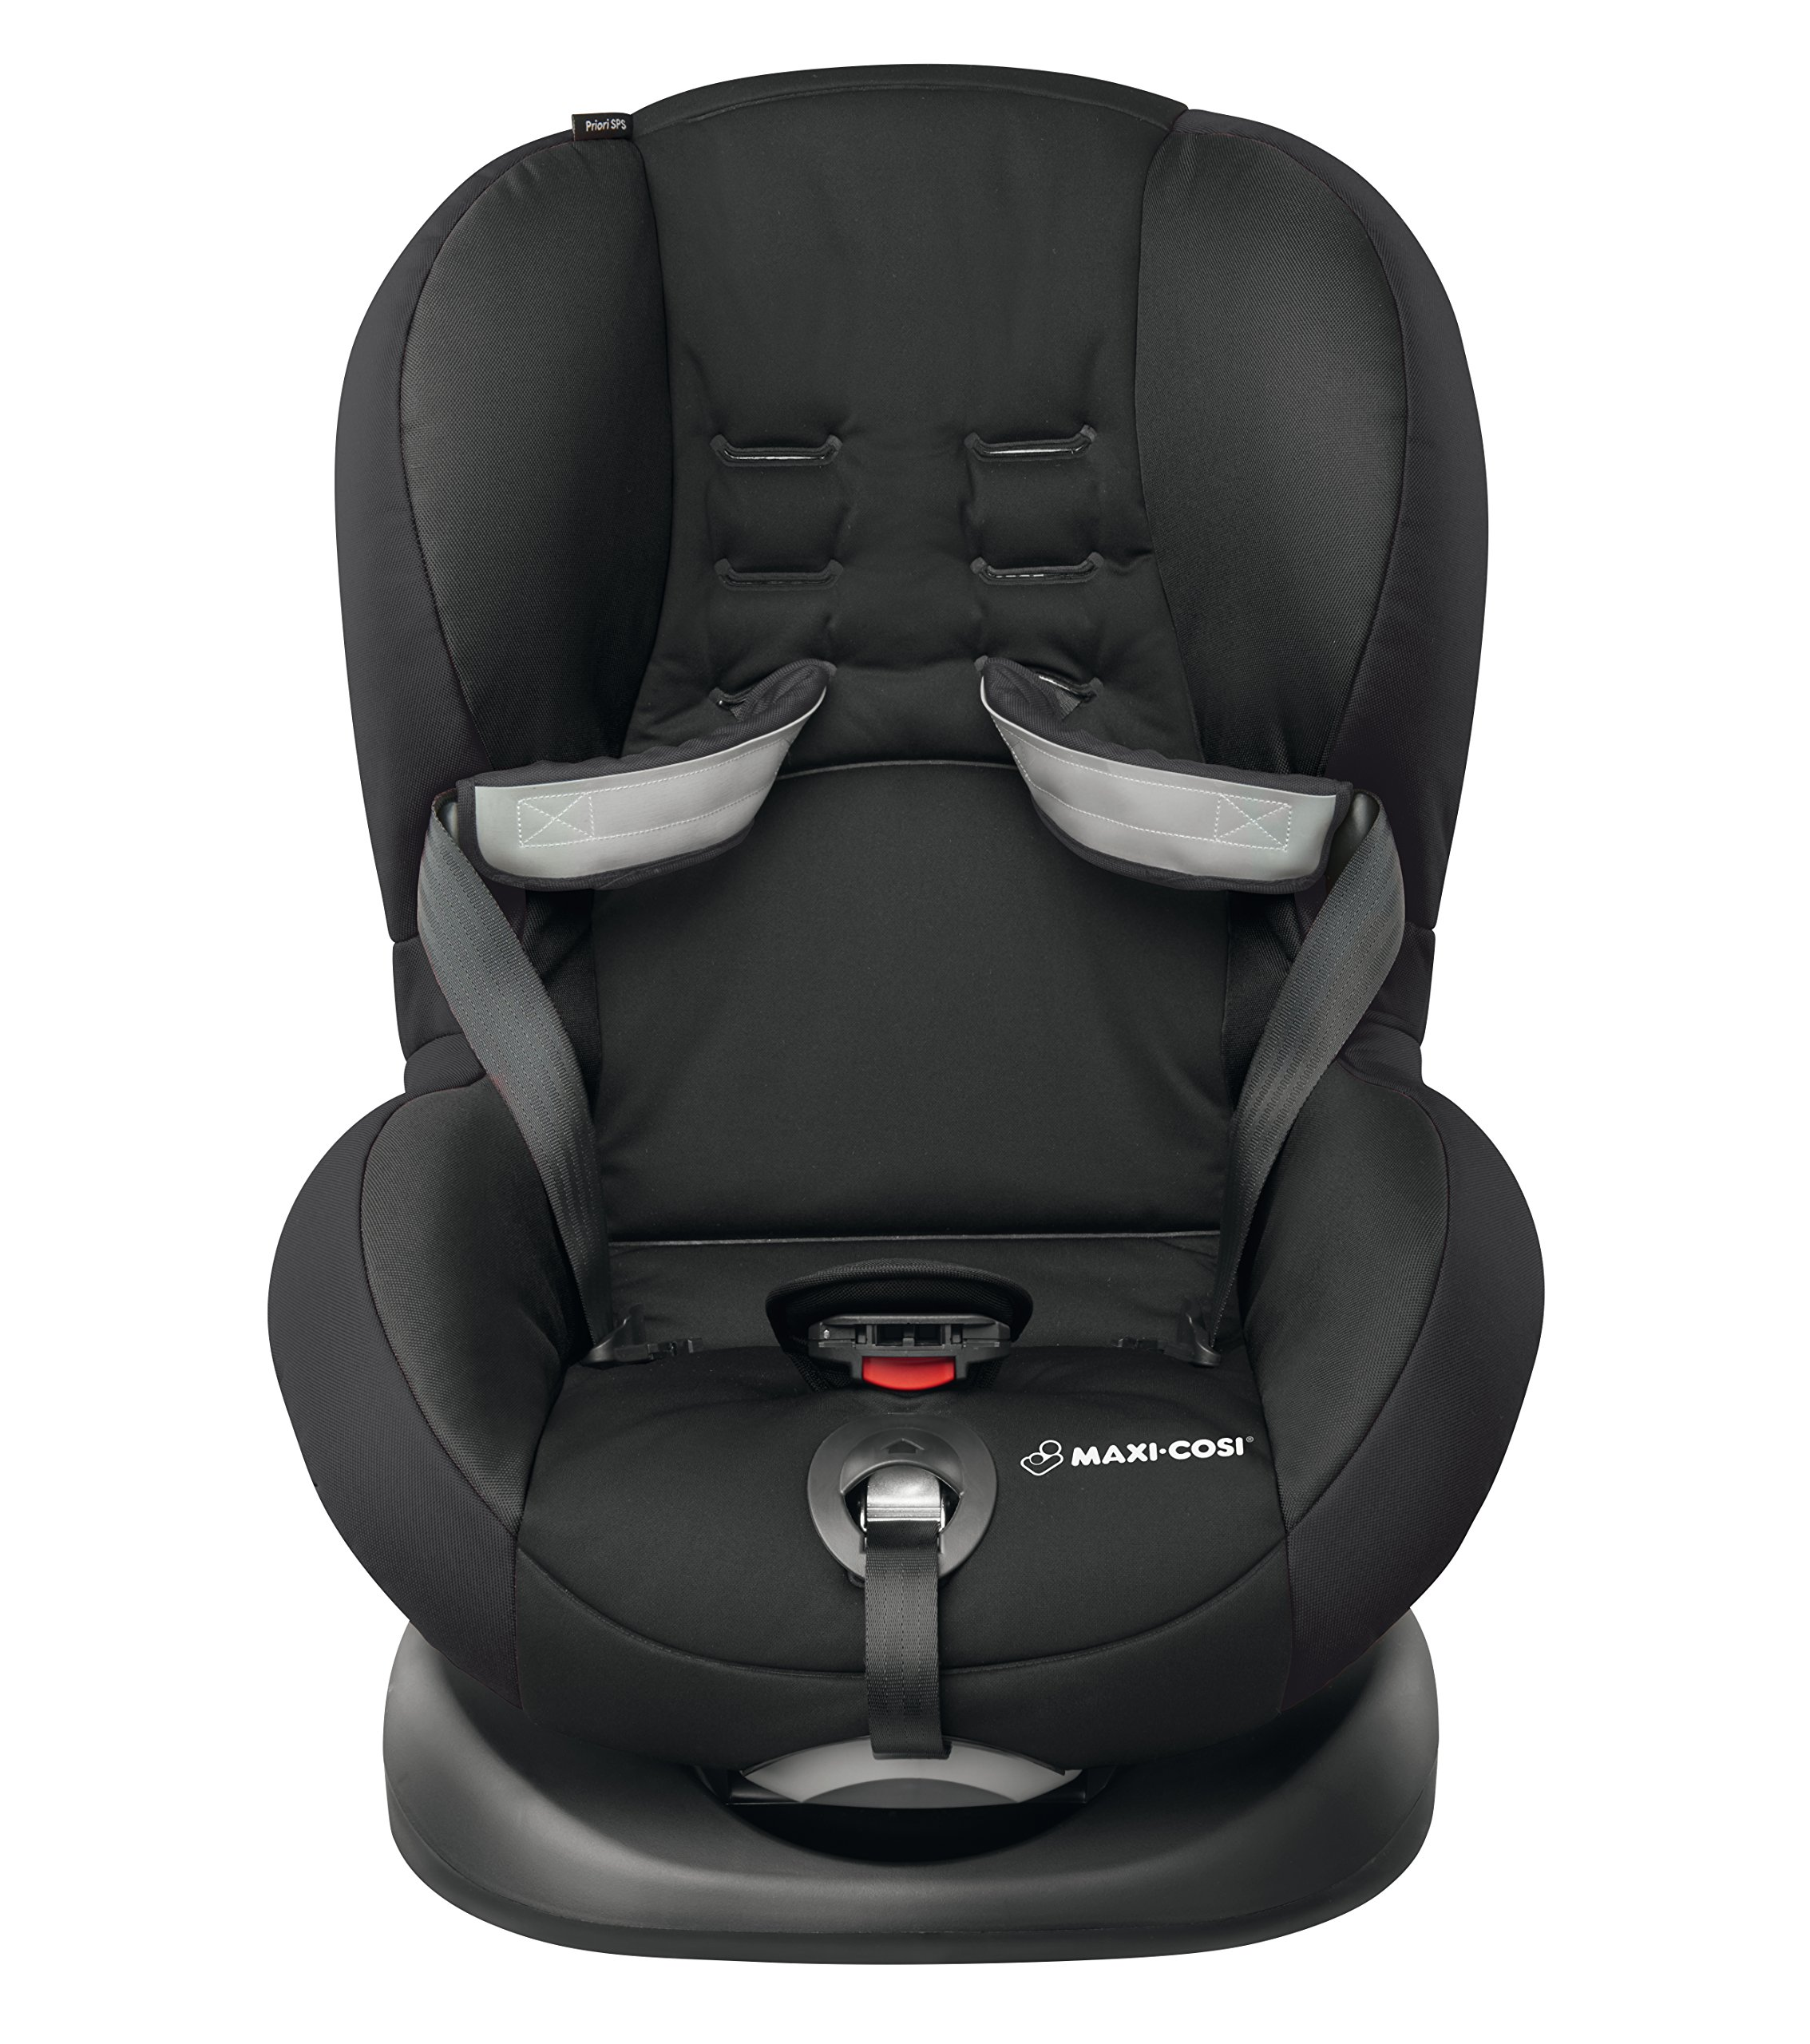 Maxi-Cosi Priori SPS Toddler Car Seat with Side Protection System, 9 Months - 4 Years, 9-18 kg, Slate Black Maxi-Cosi Forward facing group 1 car seat suitable for toddlers from 9 to 18 kg (approximately 9 months to 4 years old) Easy to install with regular 3-point safety belt Side protection system (offers optimal protection against side impact) 4